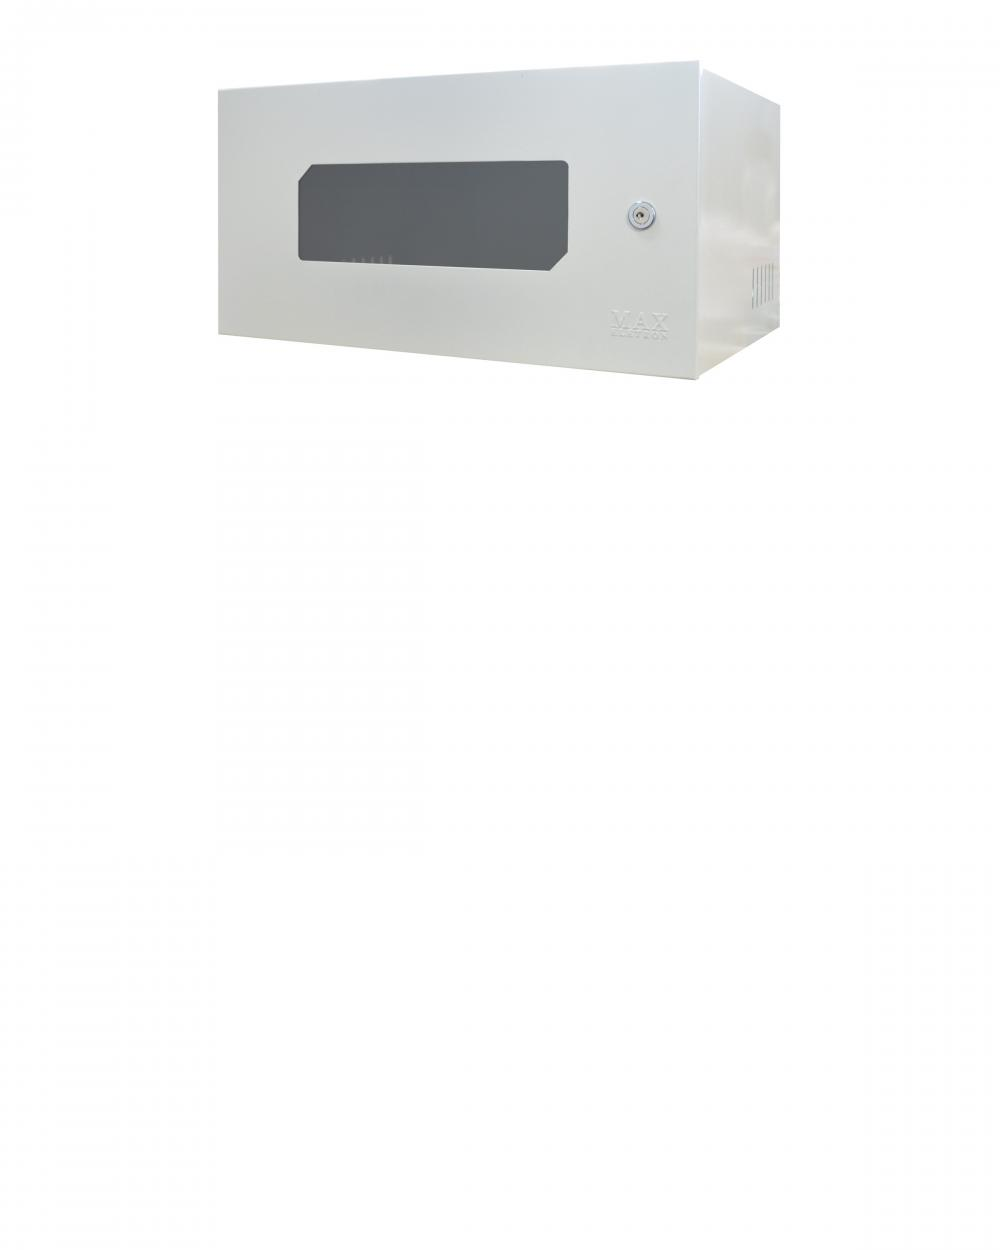 Mini Rack 5U X 350mm Economic Porta c/ Visor Acrílico Branco